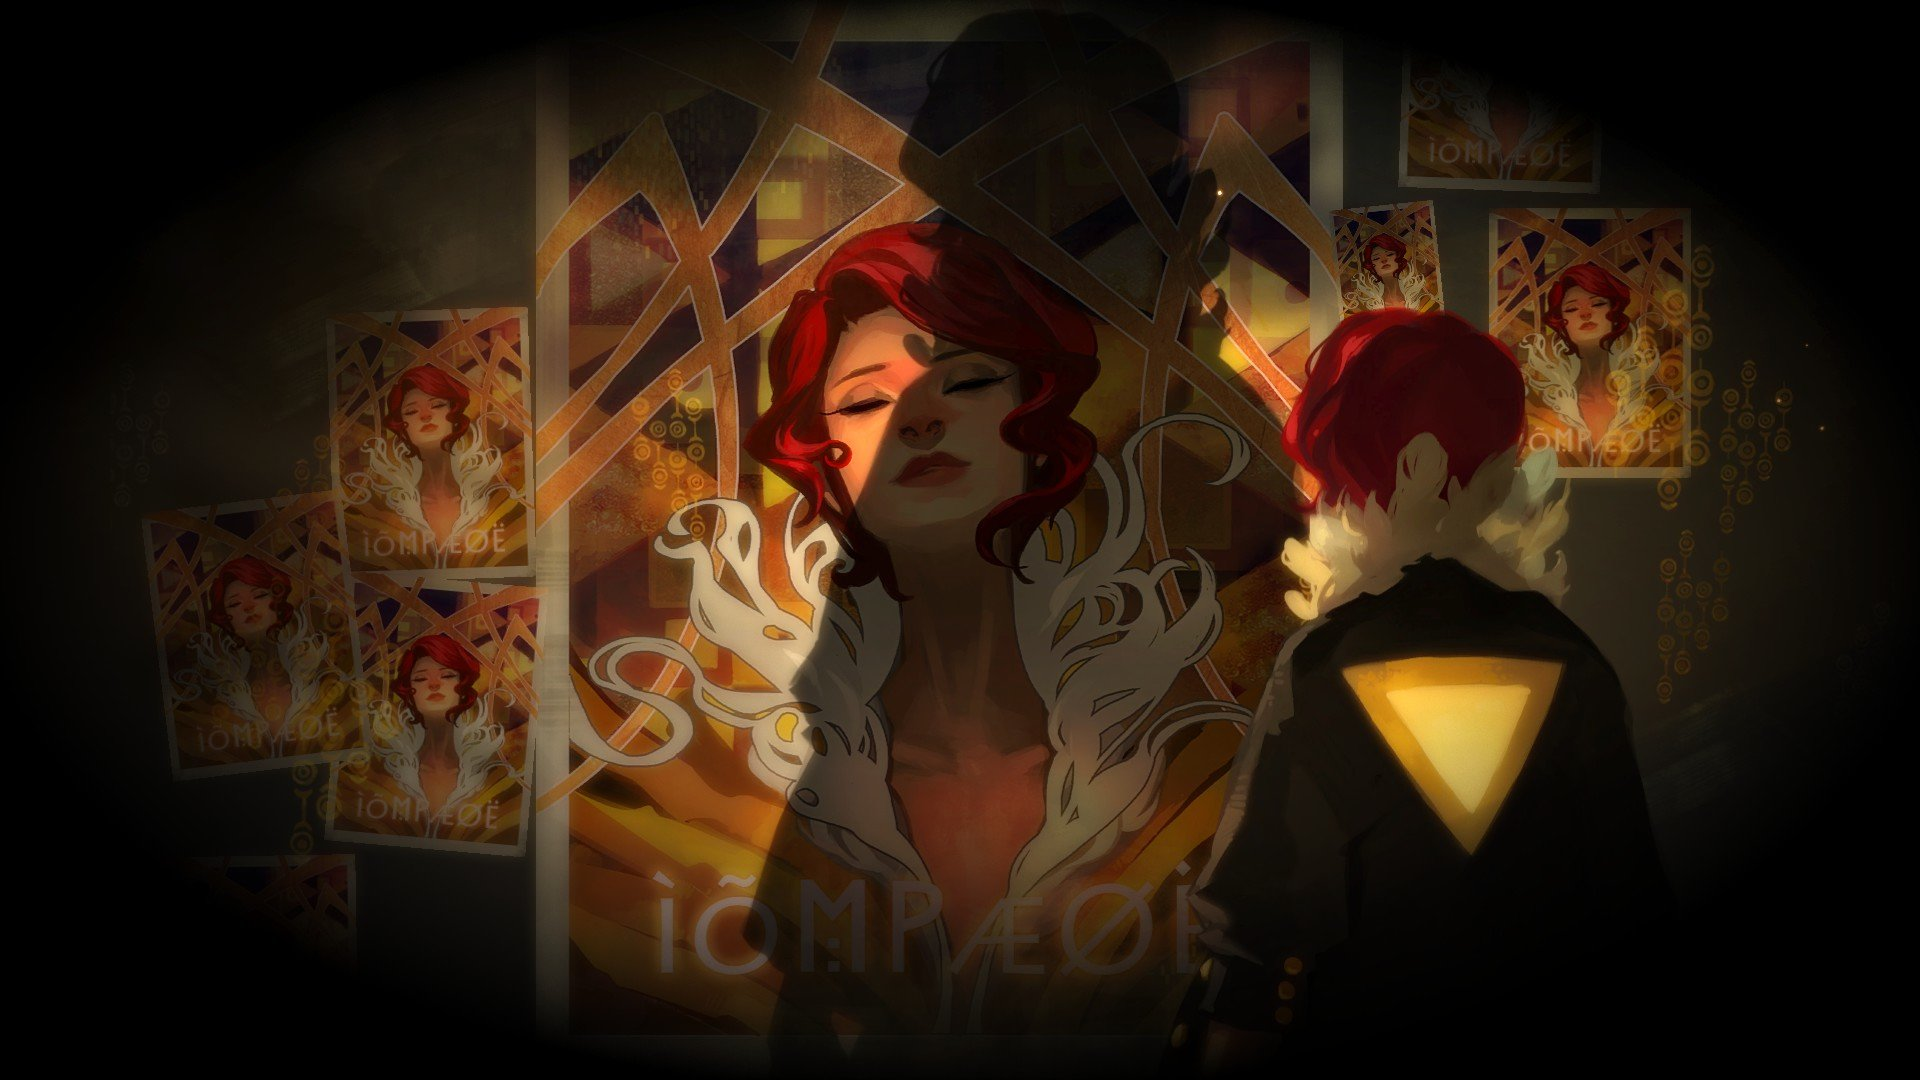 Download 1080p Transistor PC wallpaper ID:330661 for free